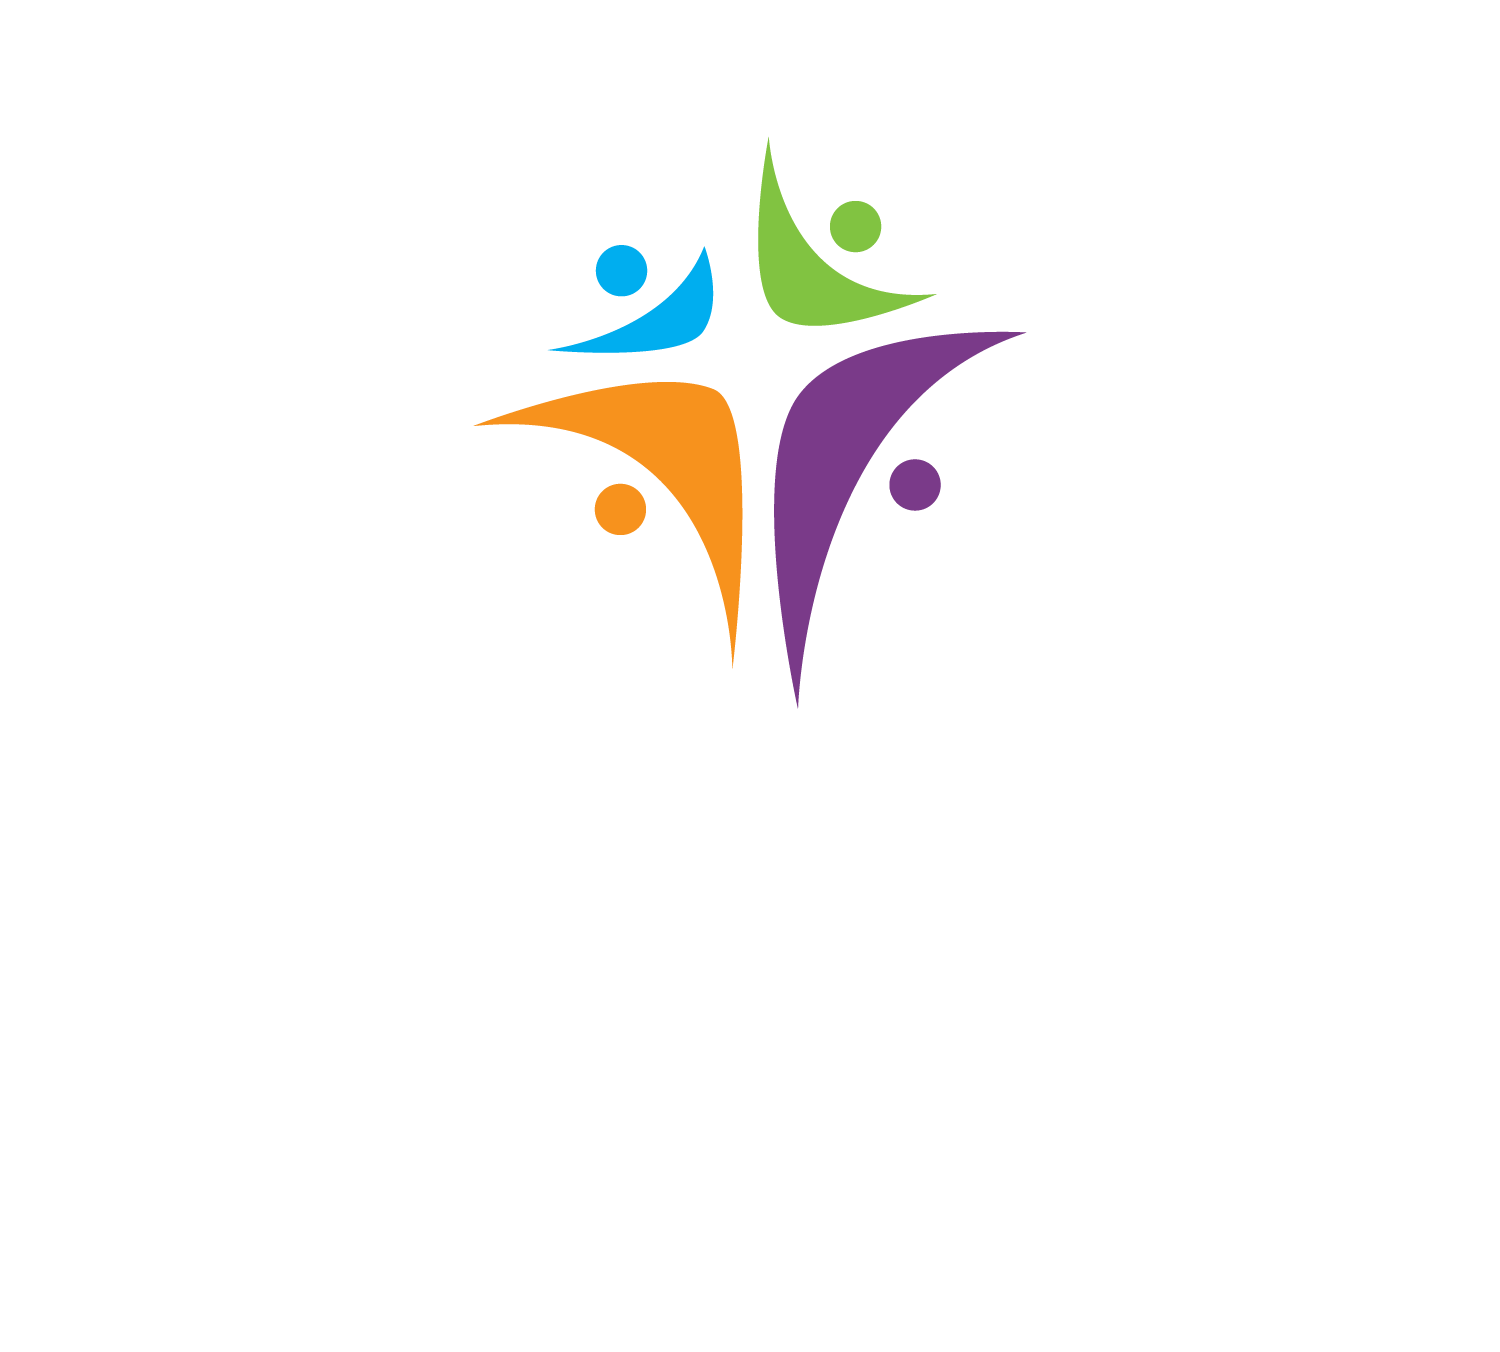 Assembly International Ministries